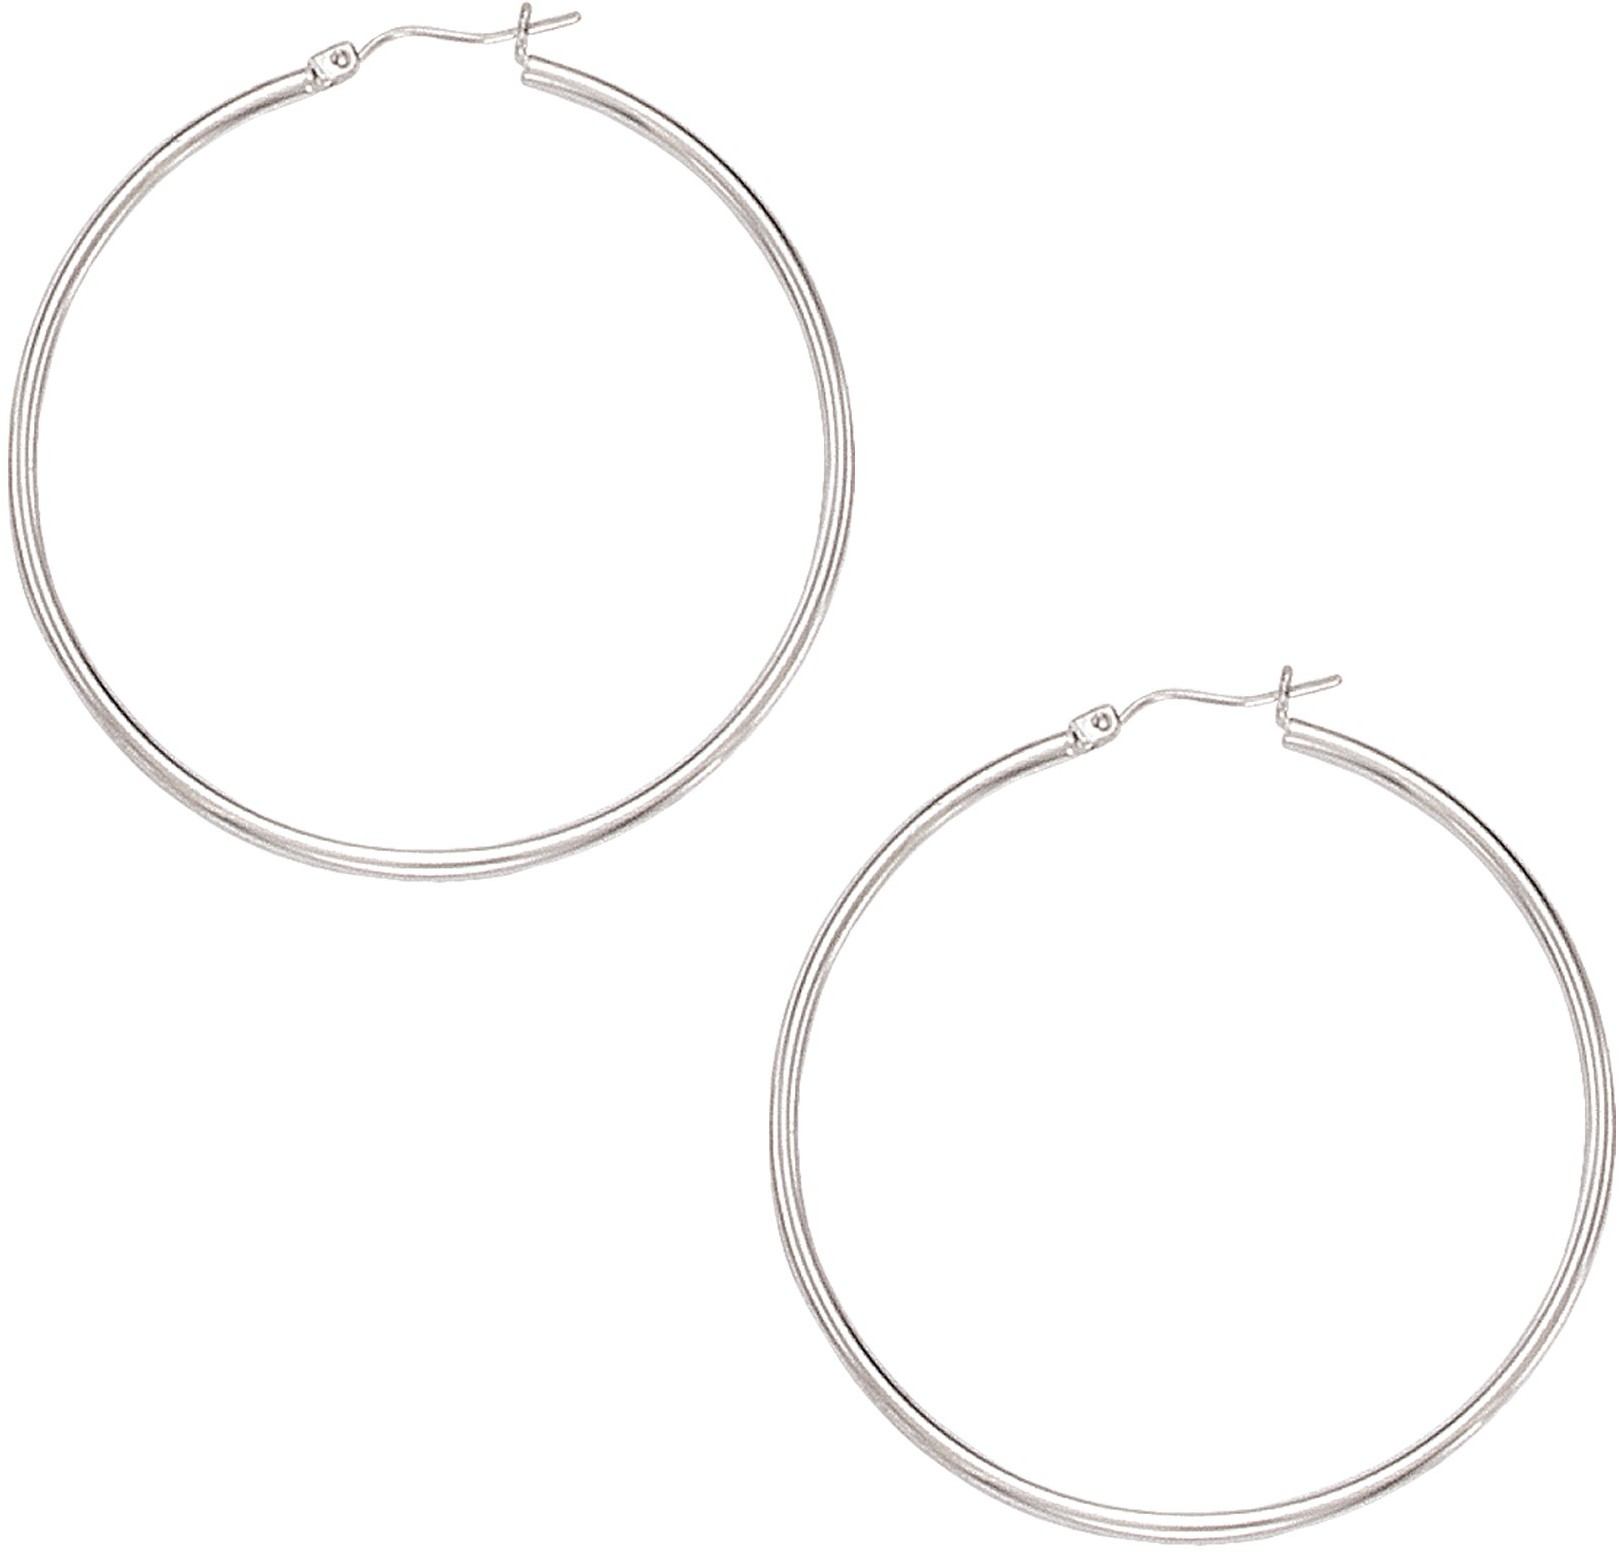 "10K White Gold 2.0X50mm (0.08""x1.97"") Polished Large Open Round Tube Hoop Like Fancy Earrings"